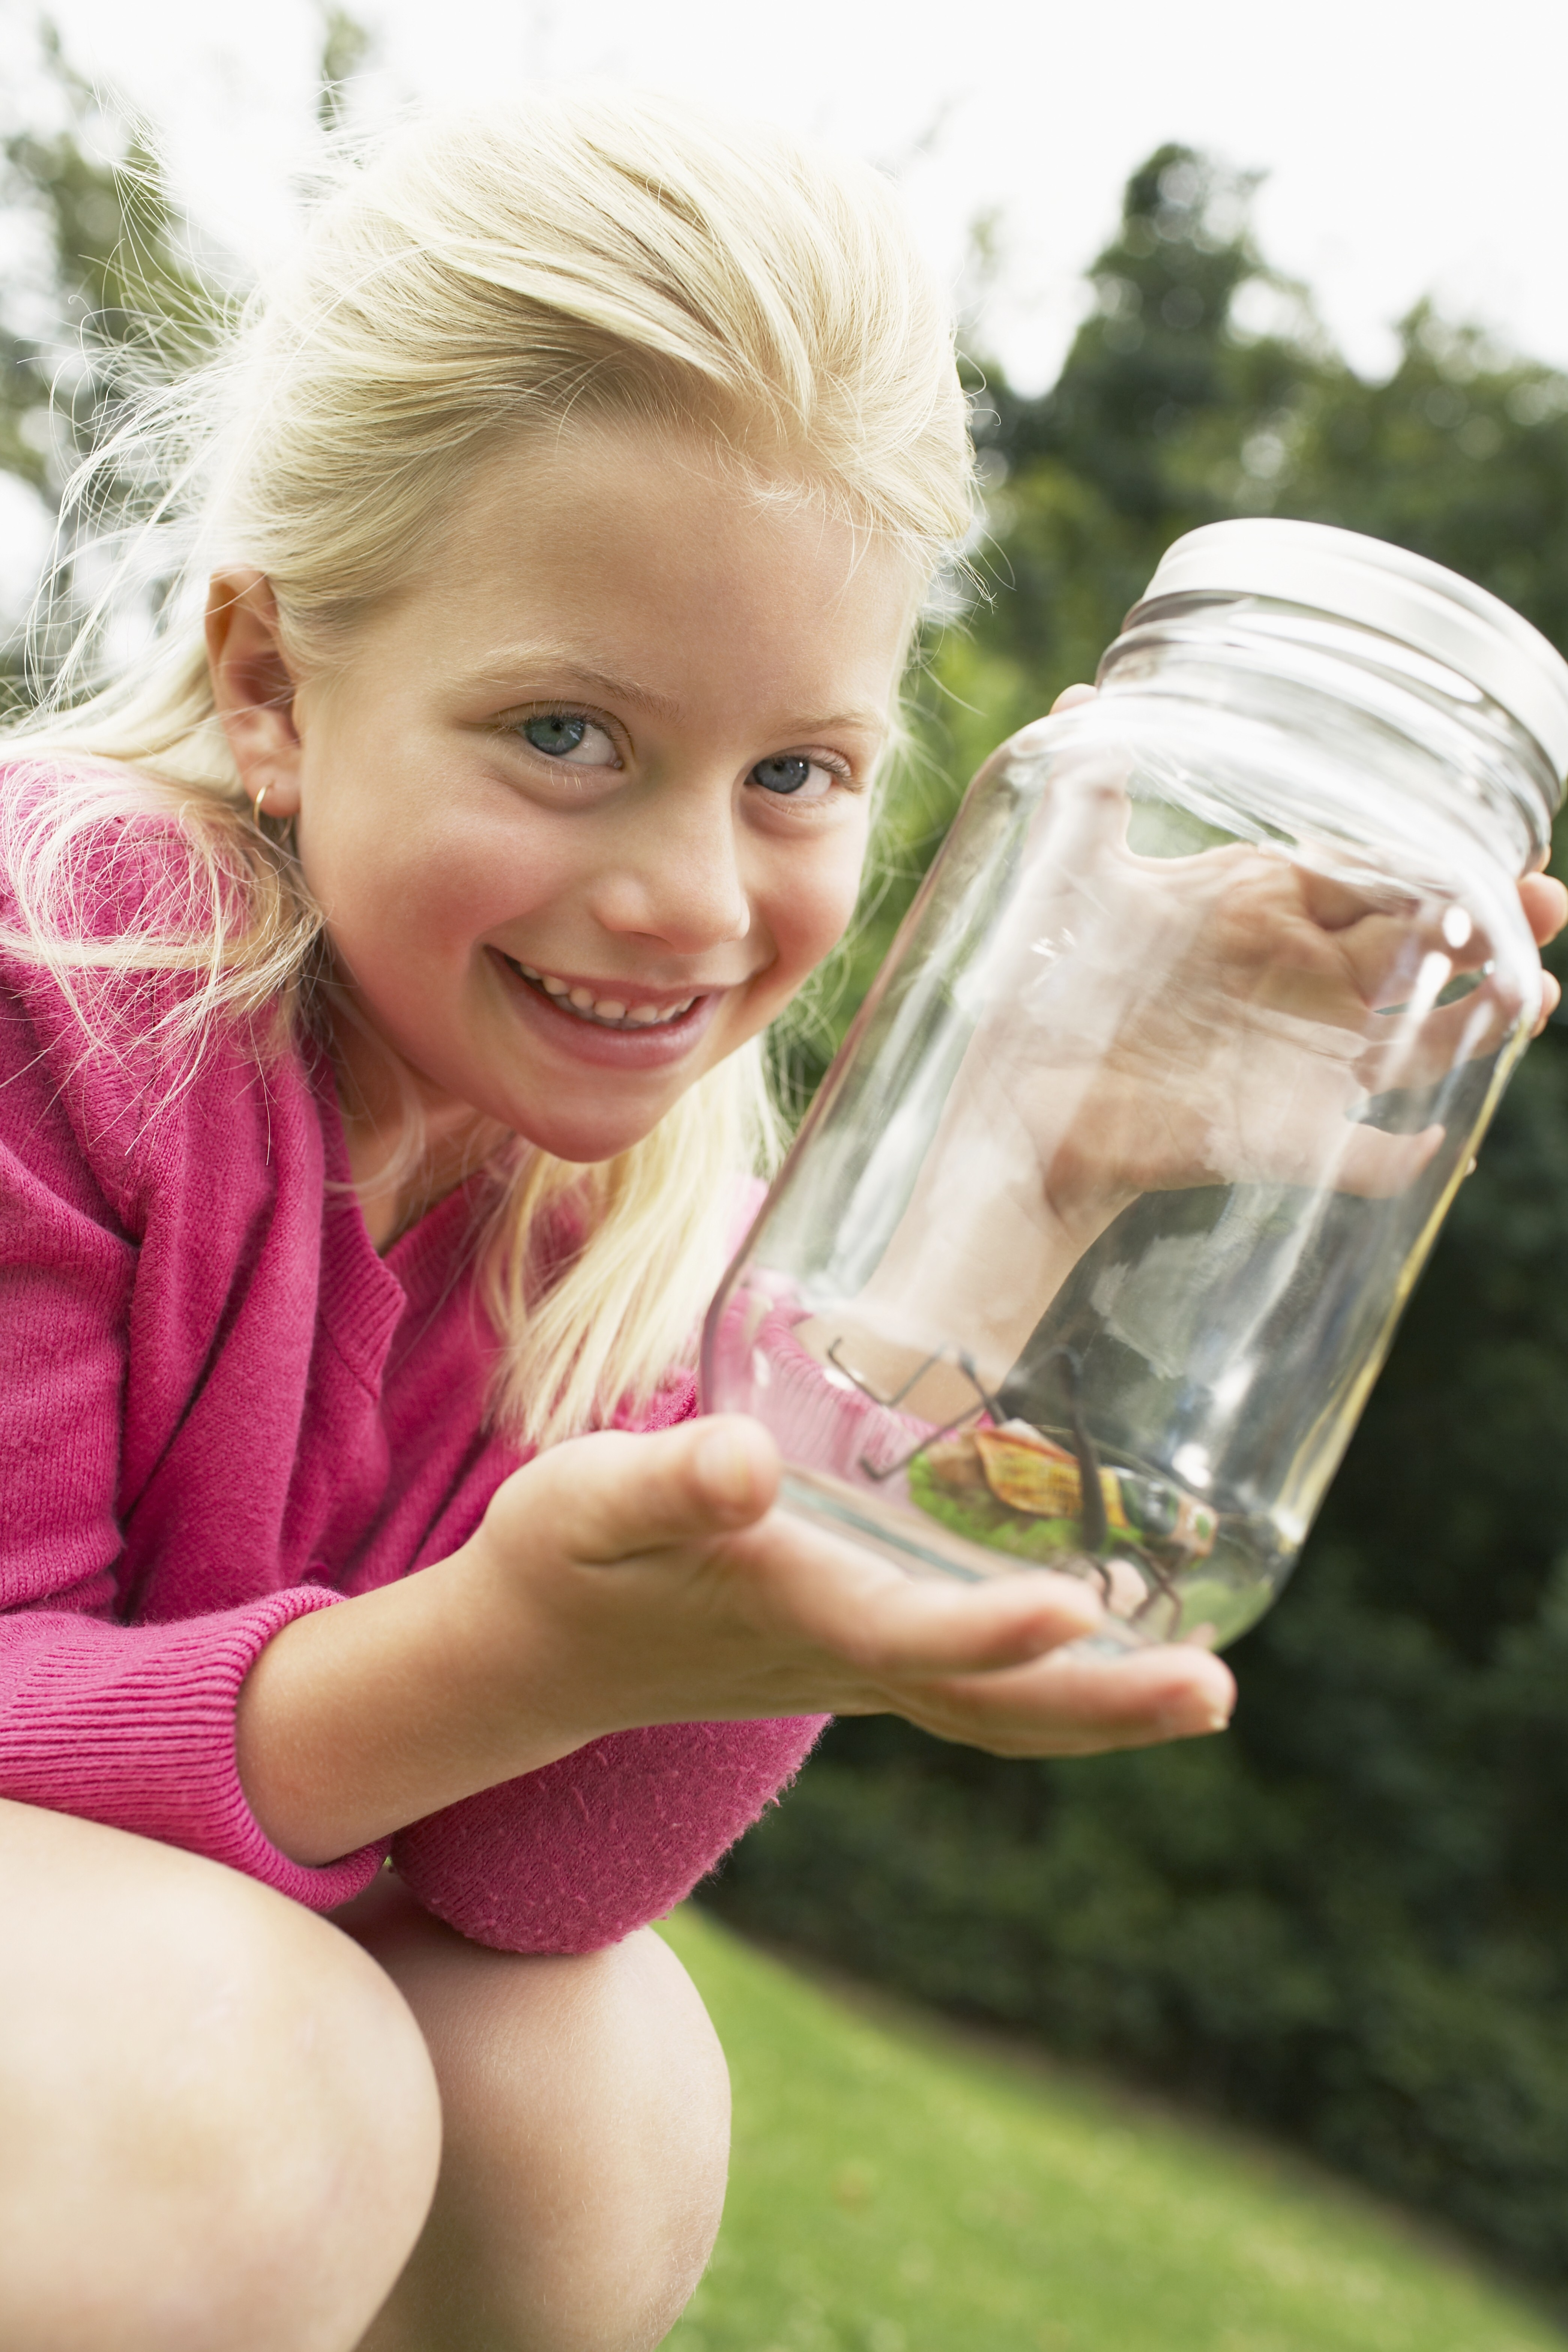 Child with a bug in a jar